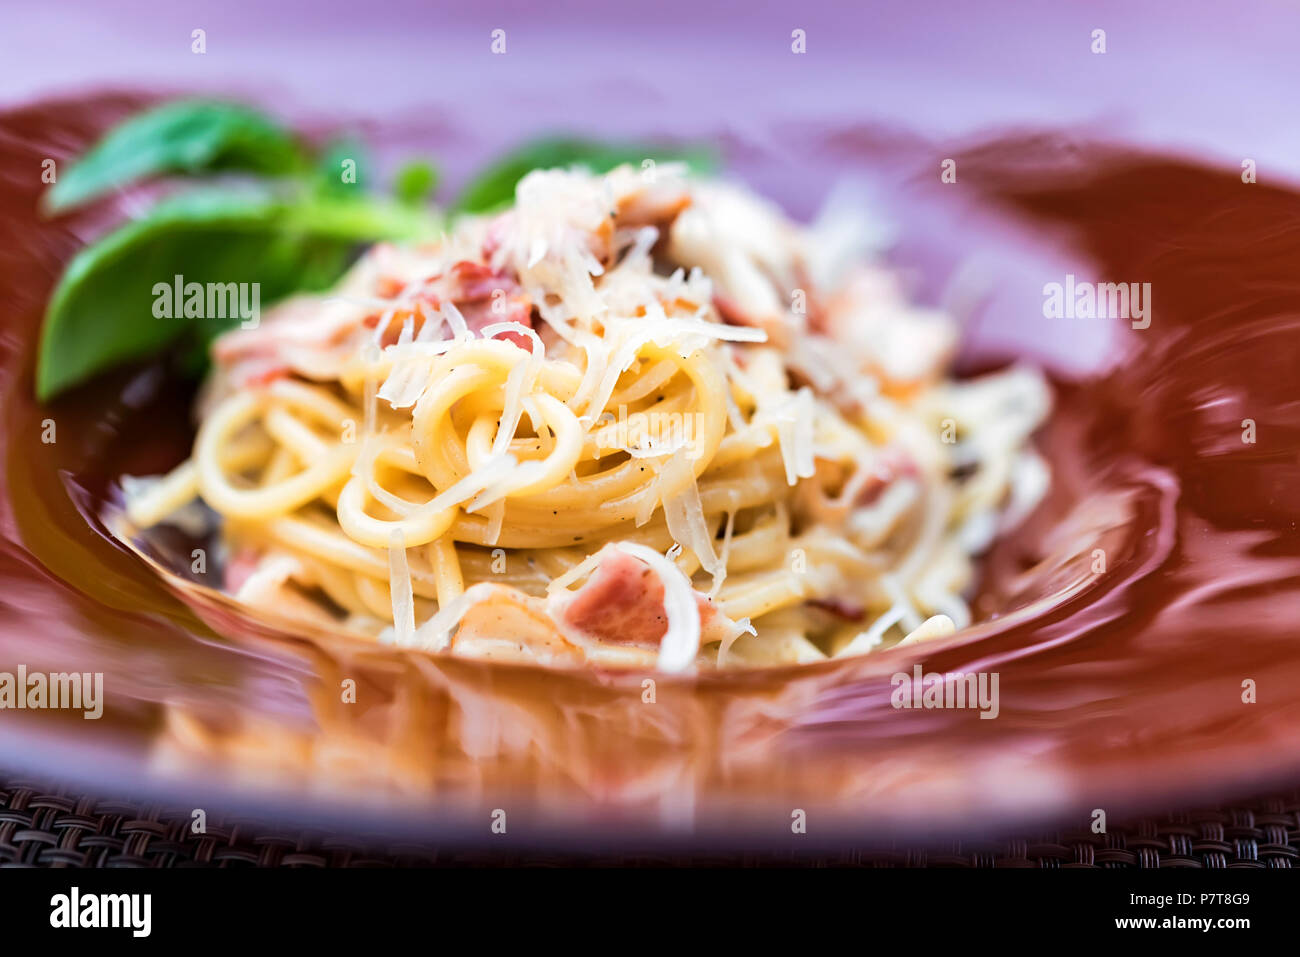 Italian pasta with meat and cheese - Stock Image